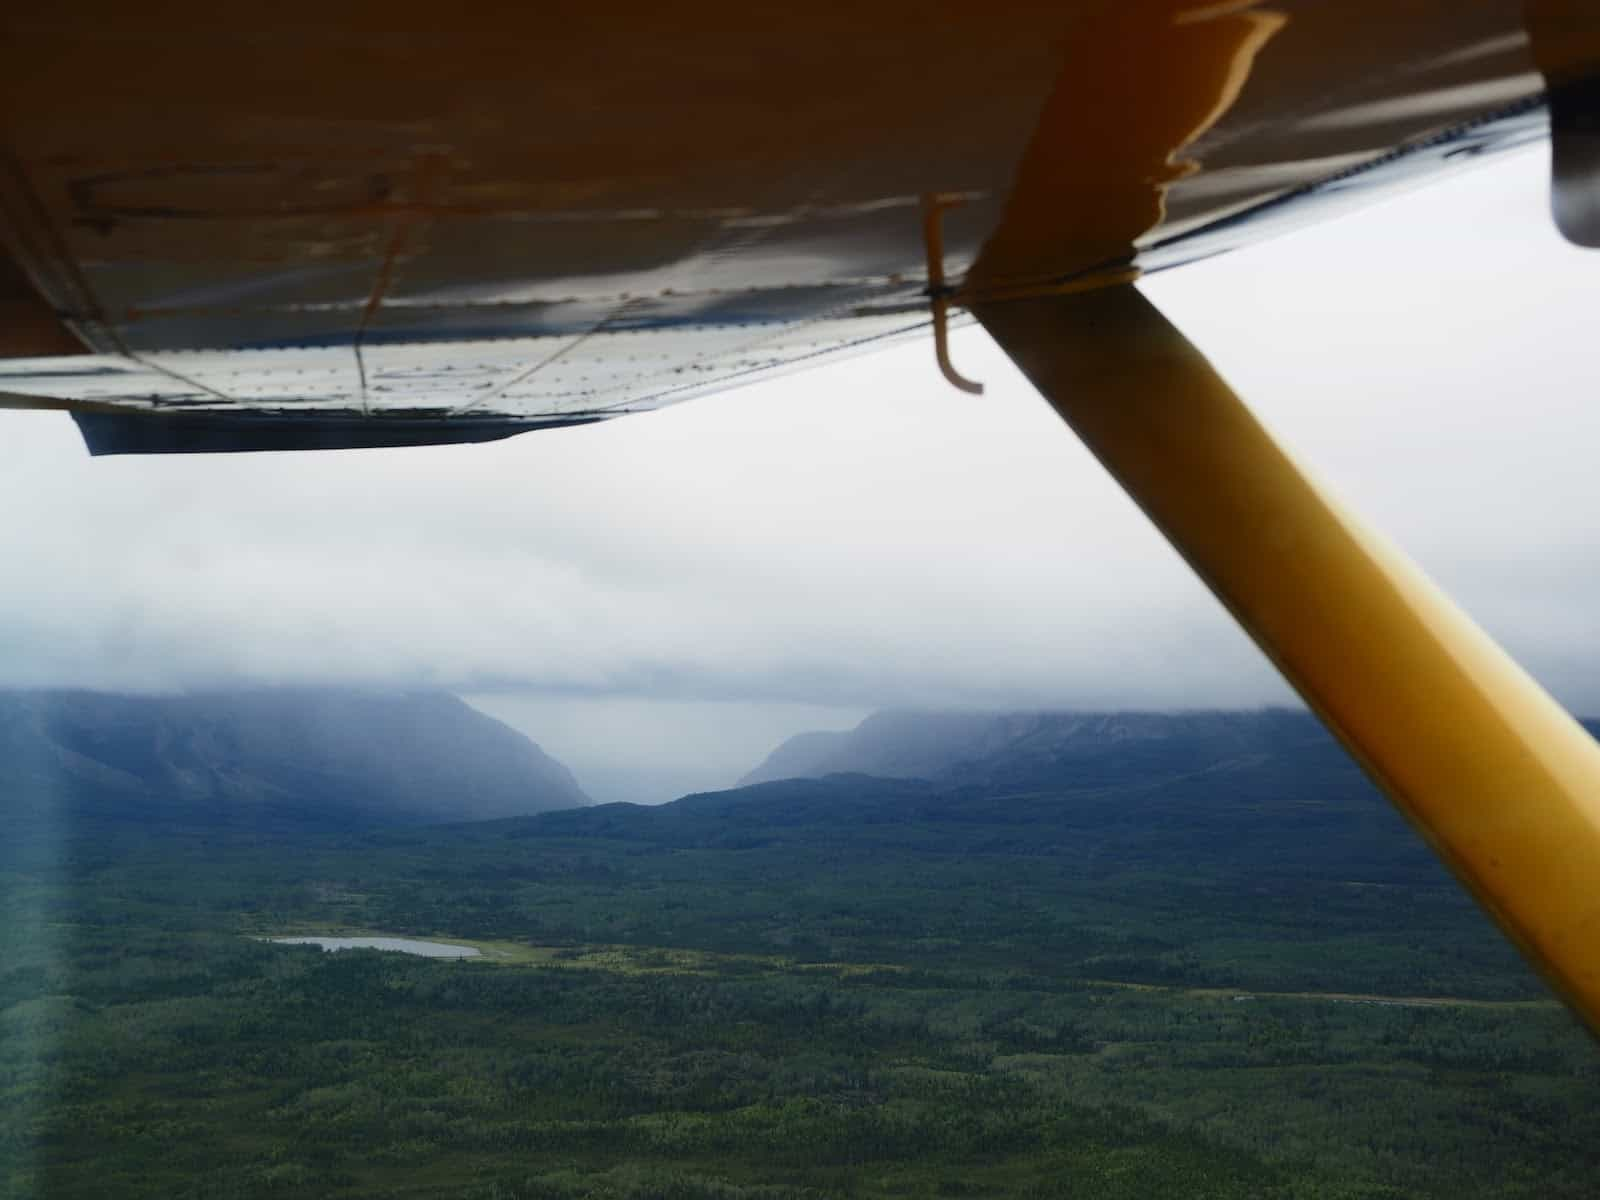 Nahanni River by Canoe: The pass occluded by clouds.